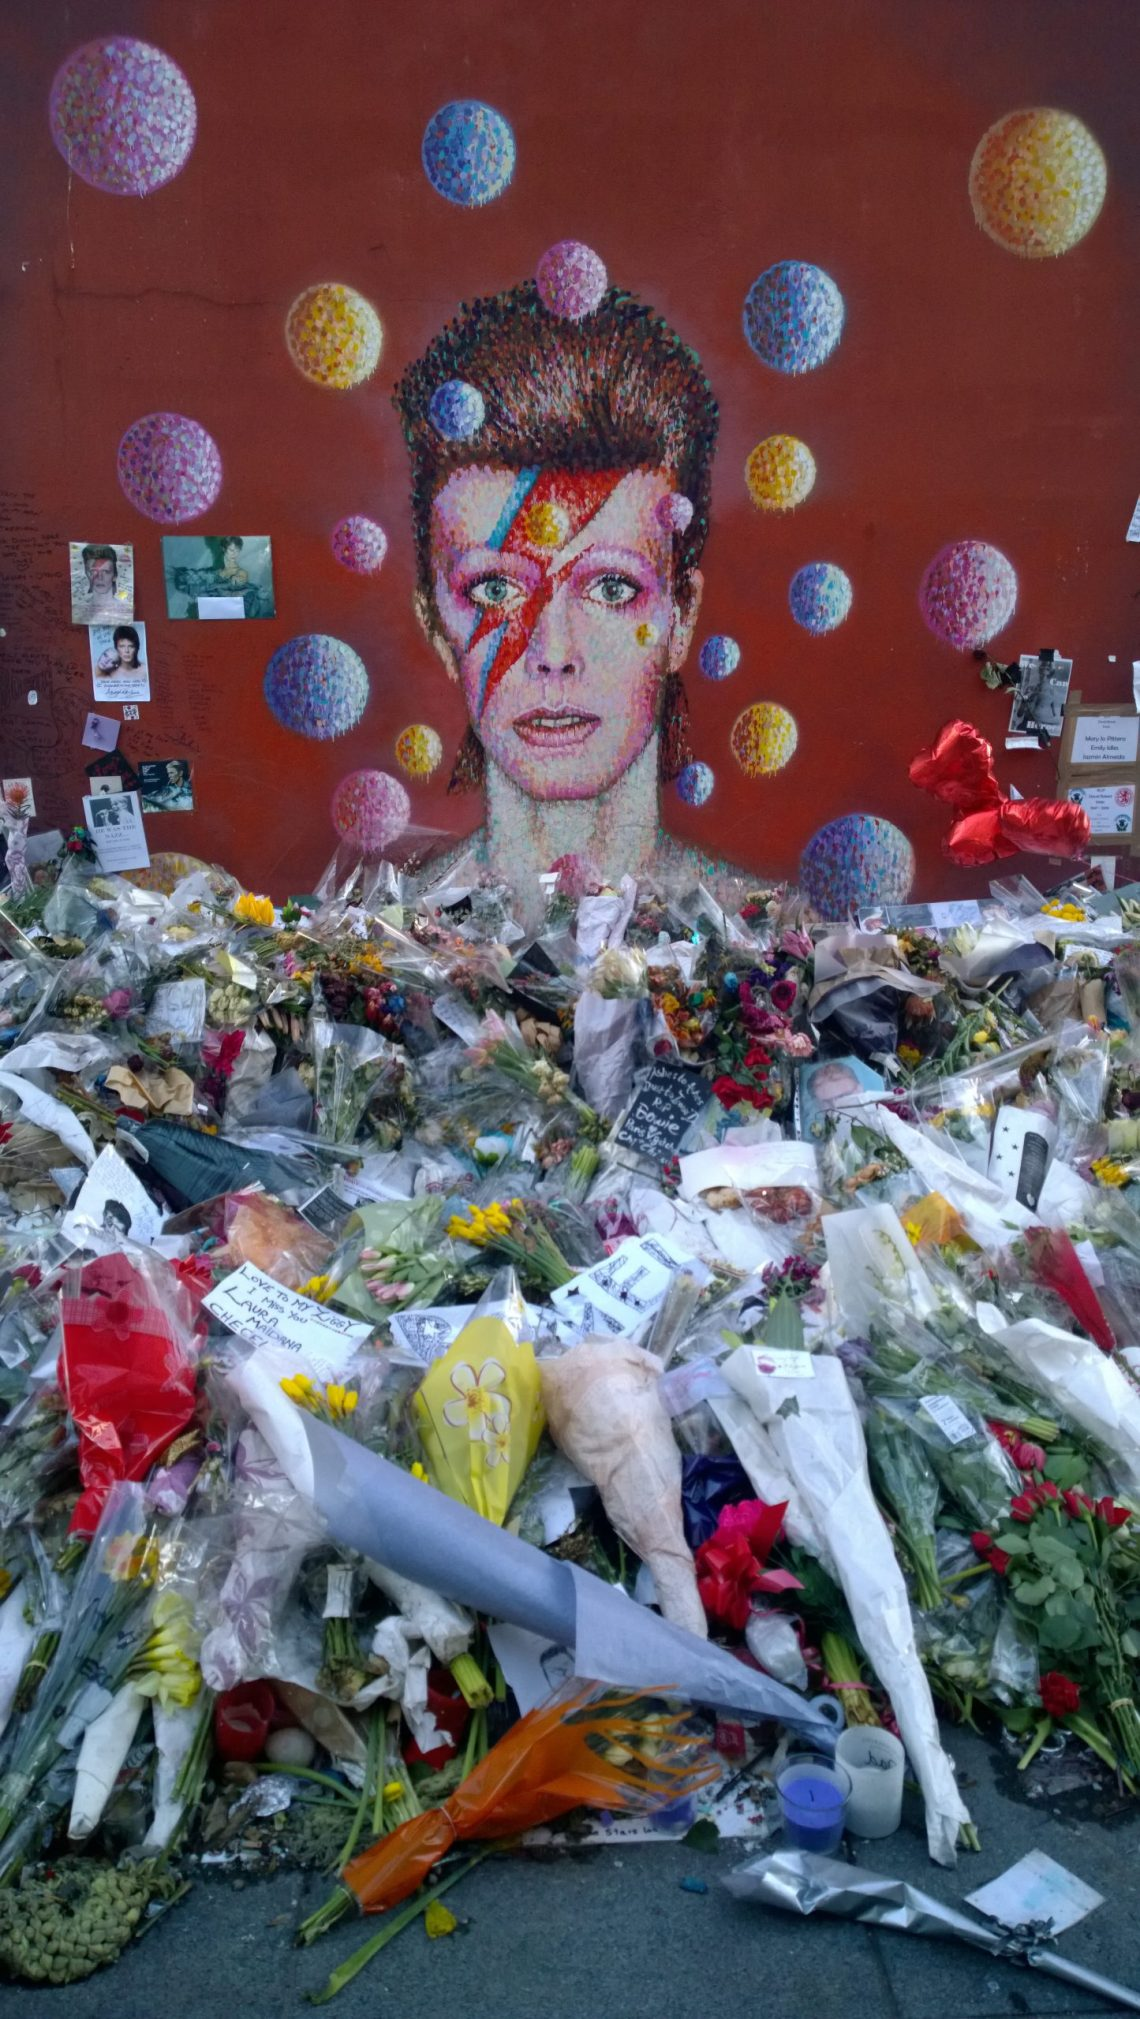 The David Bowie mural which can be found outside Brixton tube station